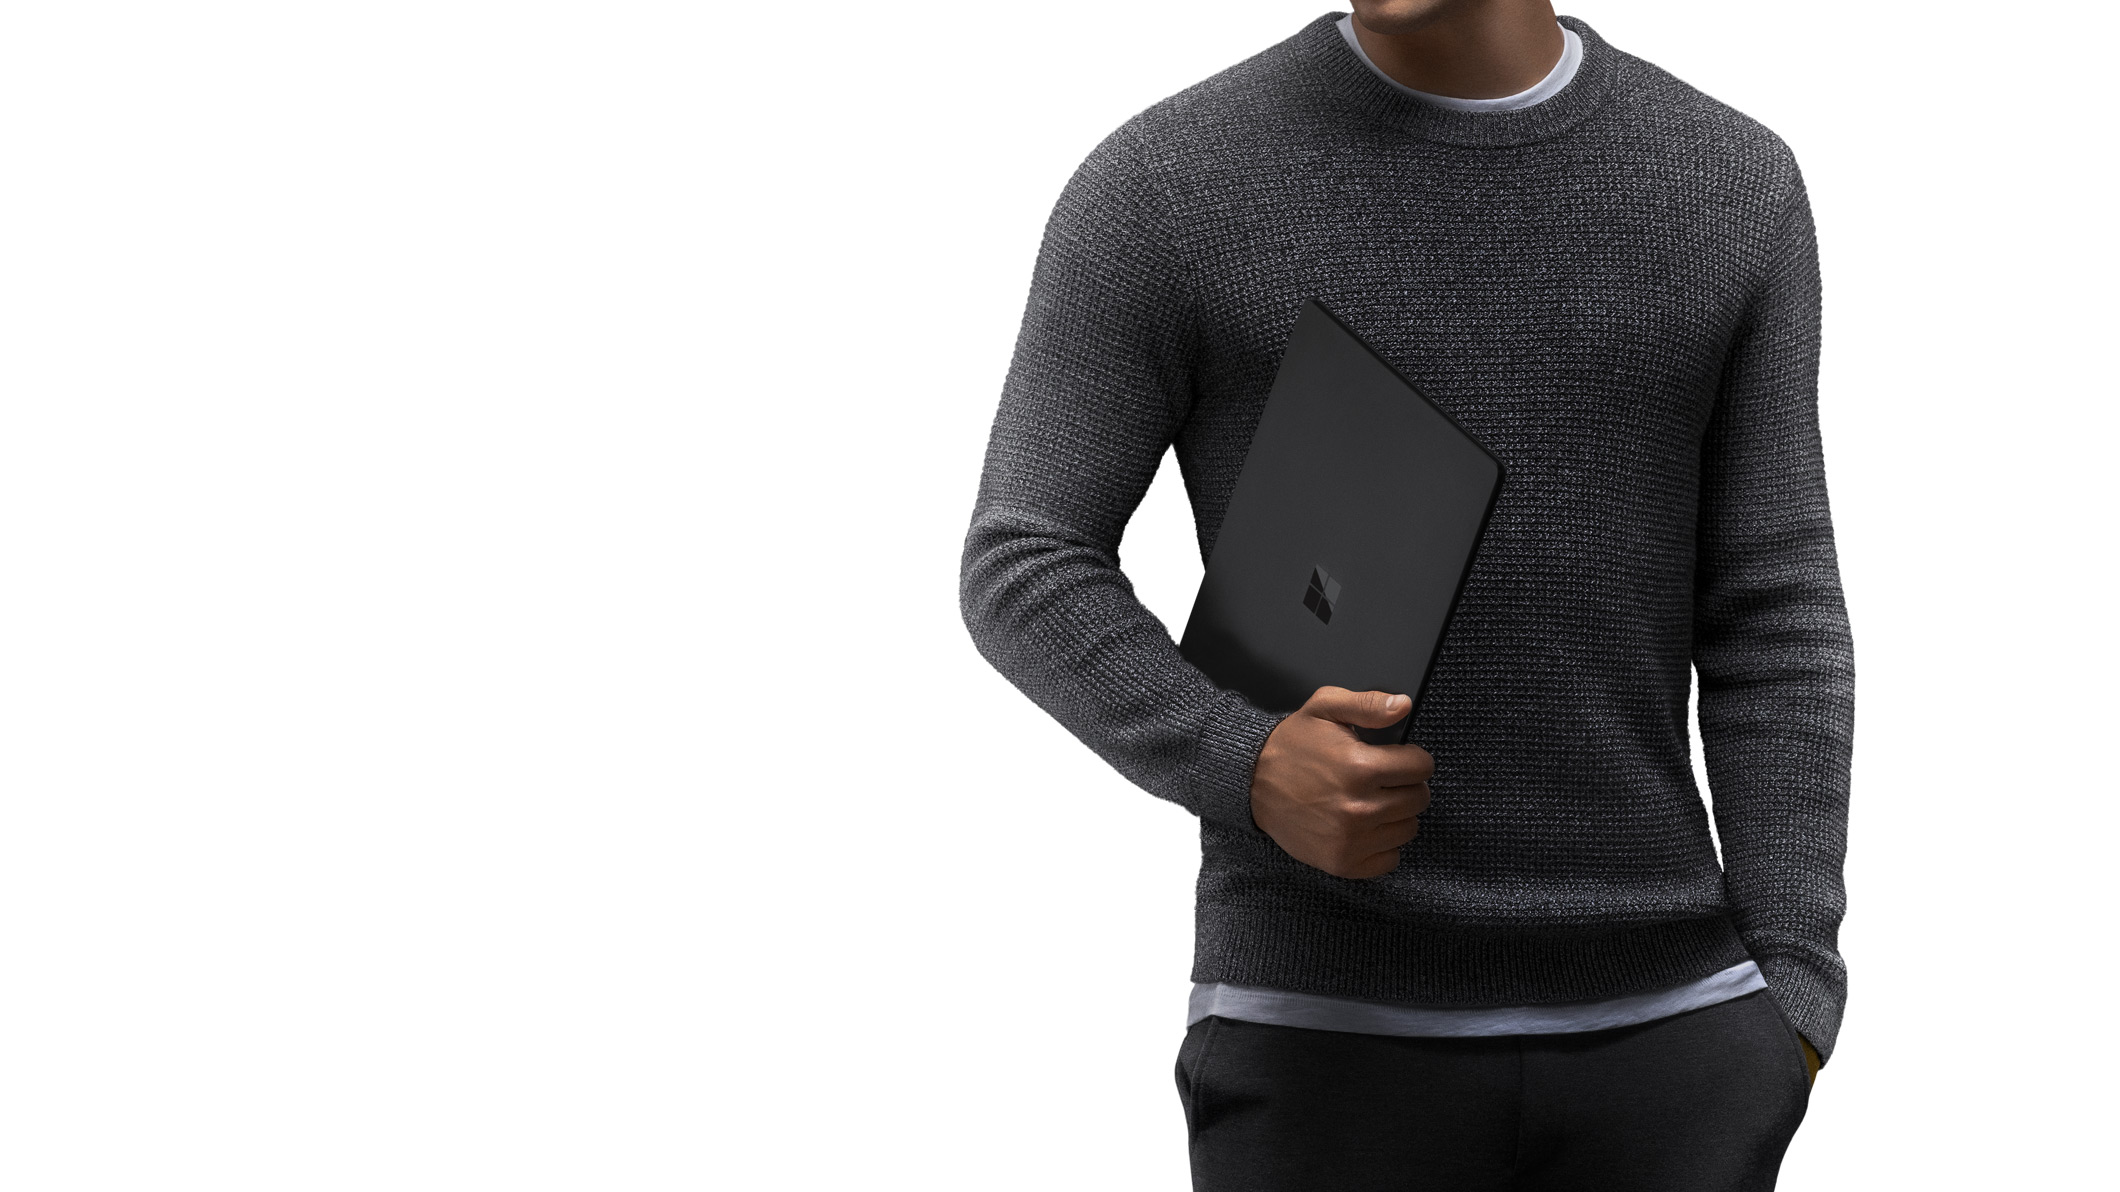 En mand i en grå sweater bærer Surface Laptop 2 i sort i sin arm